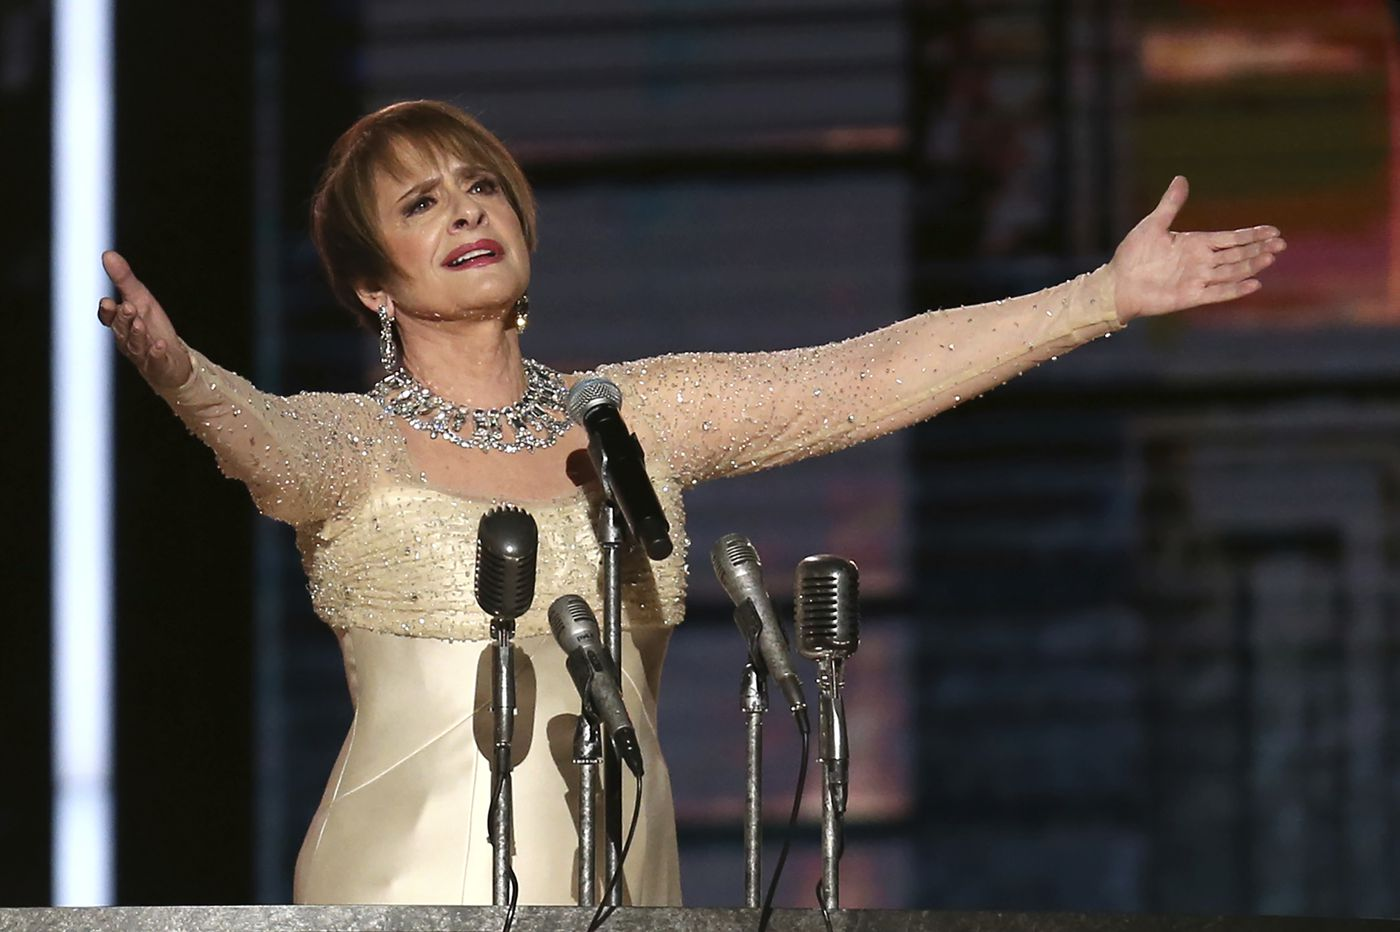 Broadway's hot tickets: Patti LuPone in 'Company' and Dylan's songs in 'North Country'